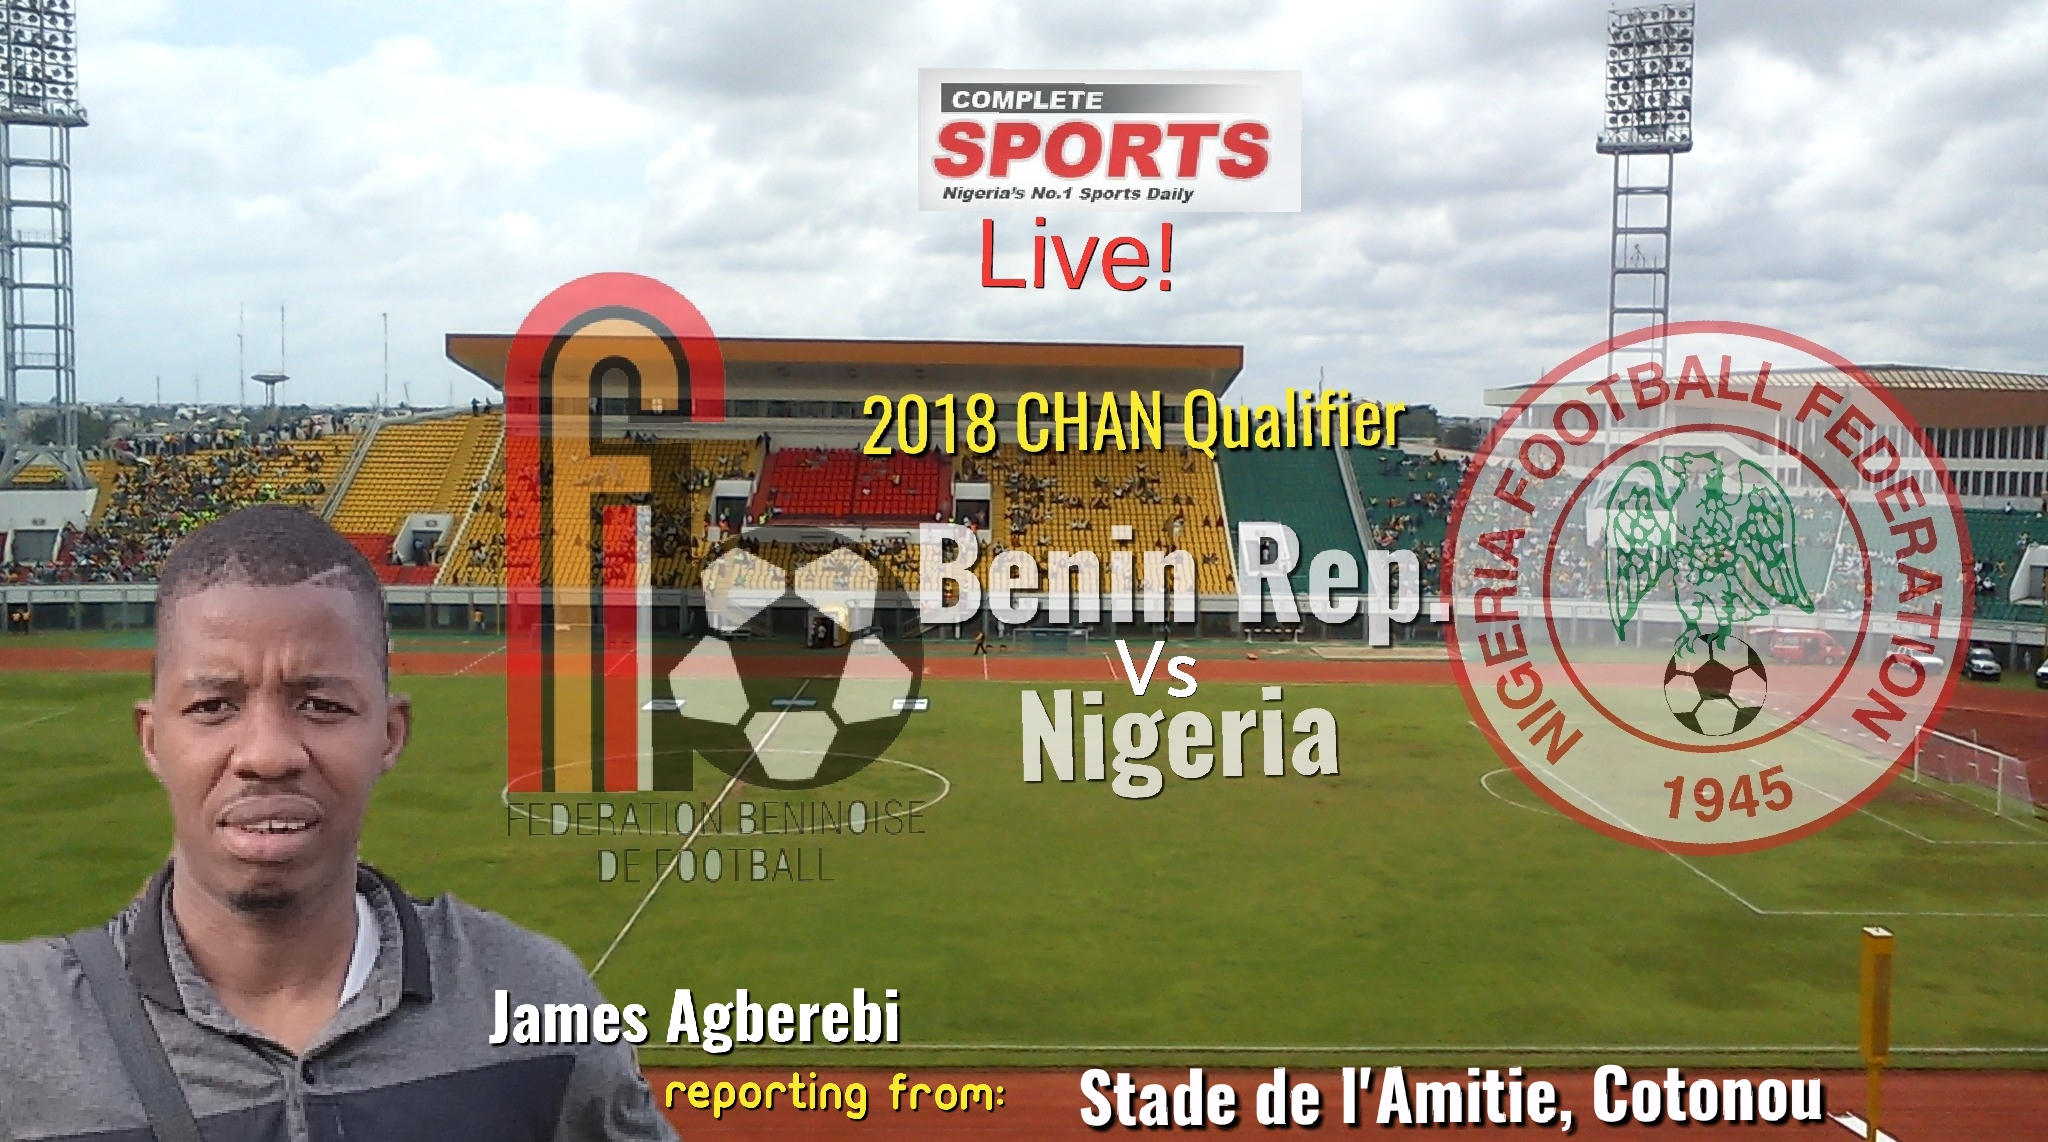 LIVE BLOGGING: Benin Republic Vs Nigeria 2018 CHAN Qualifer